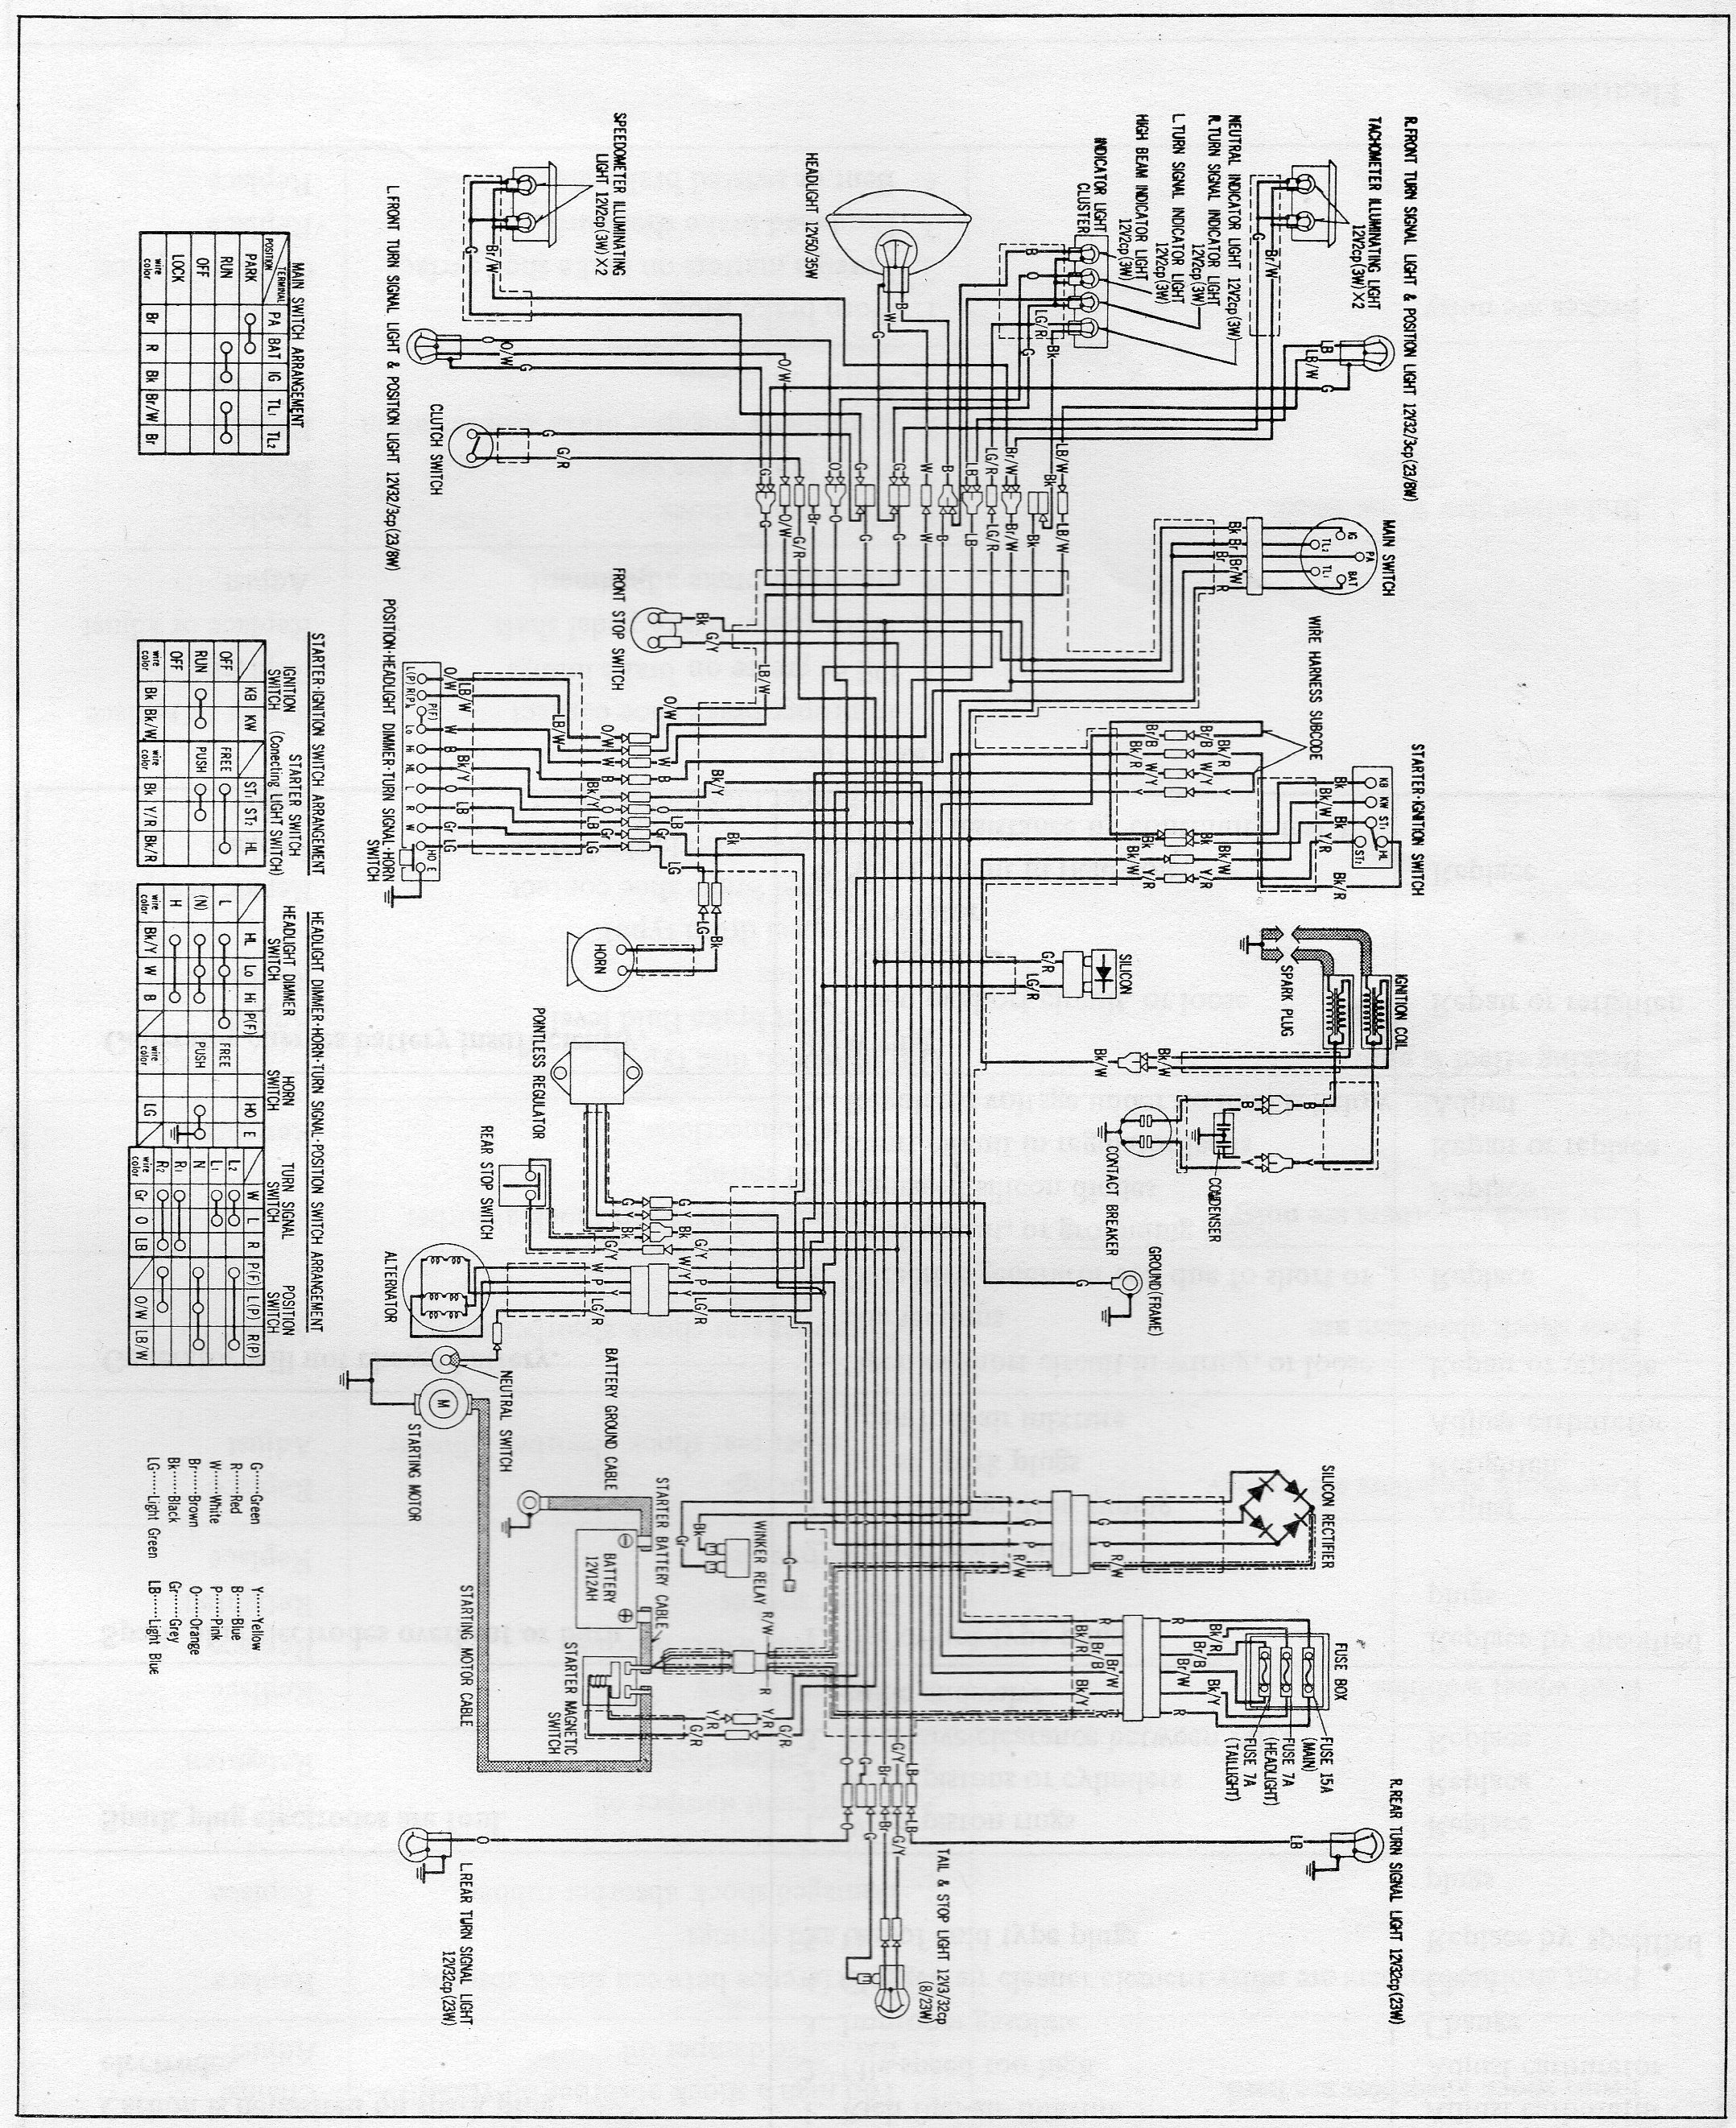 Diagram Toshiba Wiring Diagram Full Version Hd Quality Wiring Diagram Diagramrt Hosteria87 It